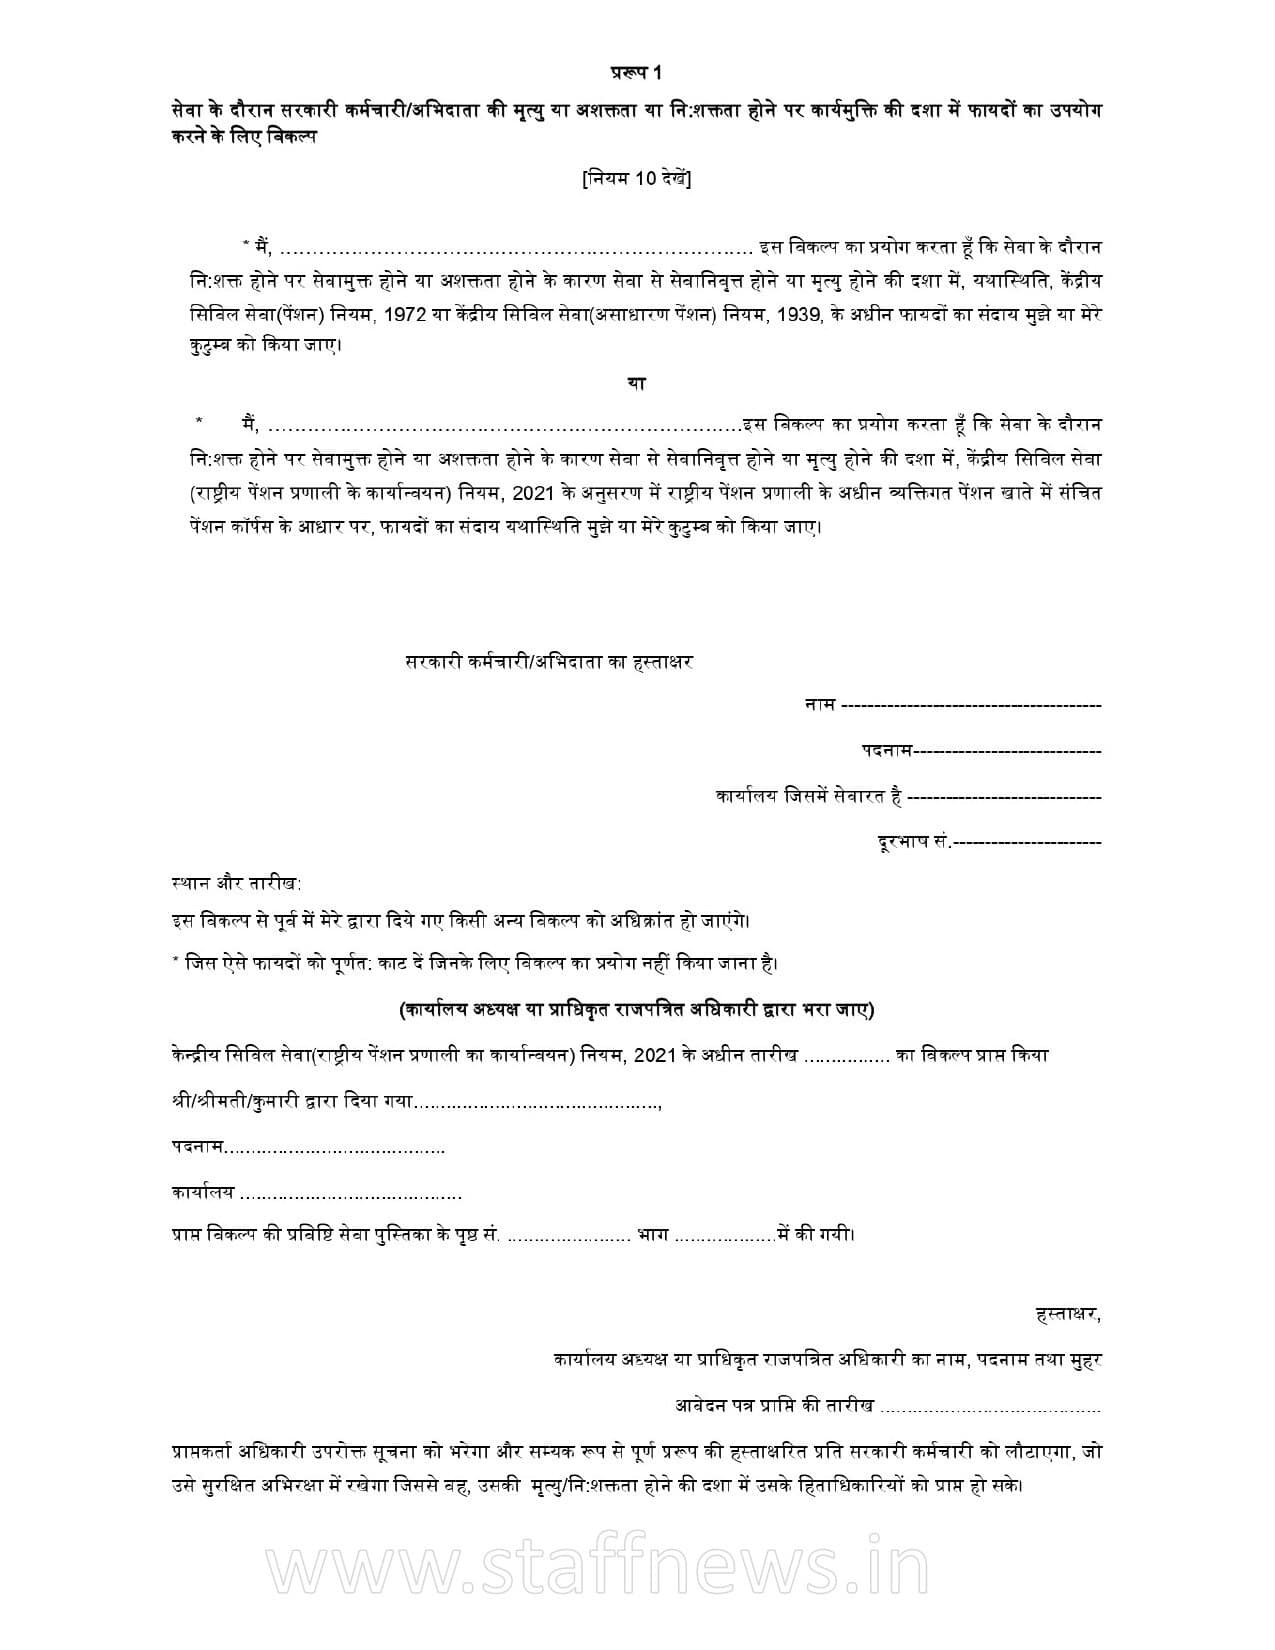 Form-1 CCS (NPS) Rules, 2021: Option to avail benefits in case of death/invalidation/disability during service